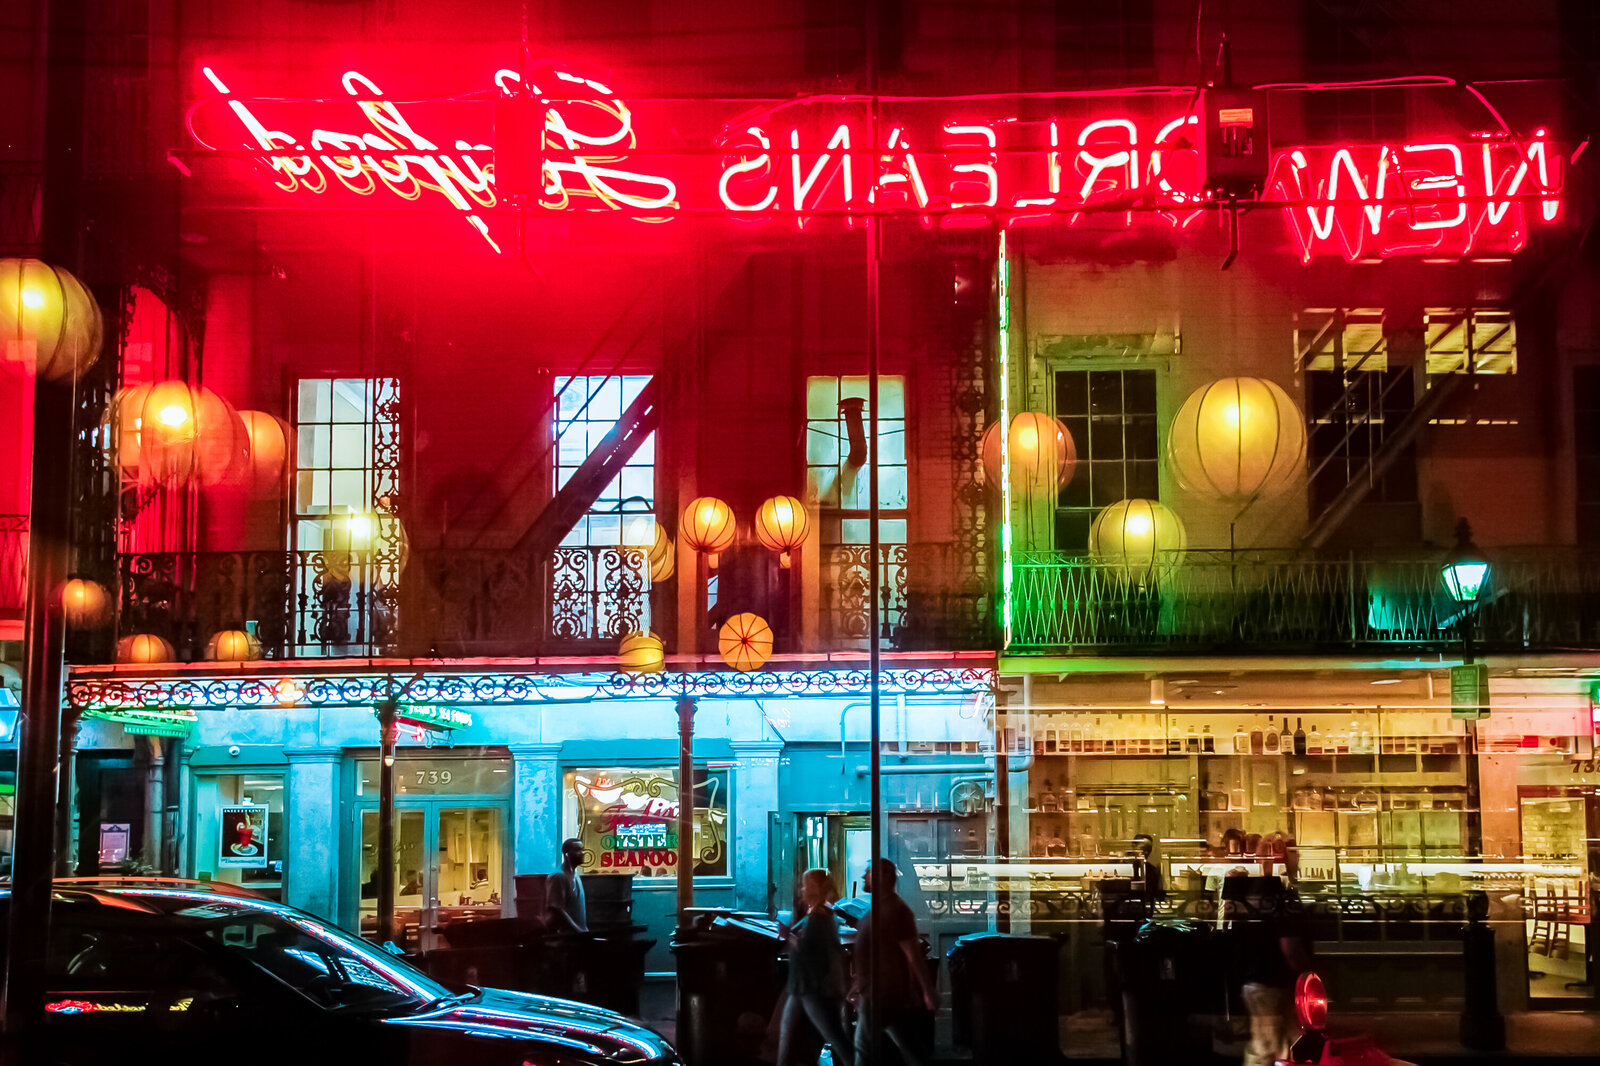 069-KBP-travel-New-Orleans-bourbon-street-neon-lights